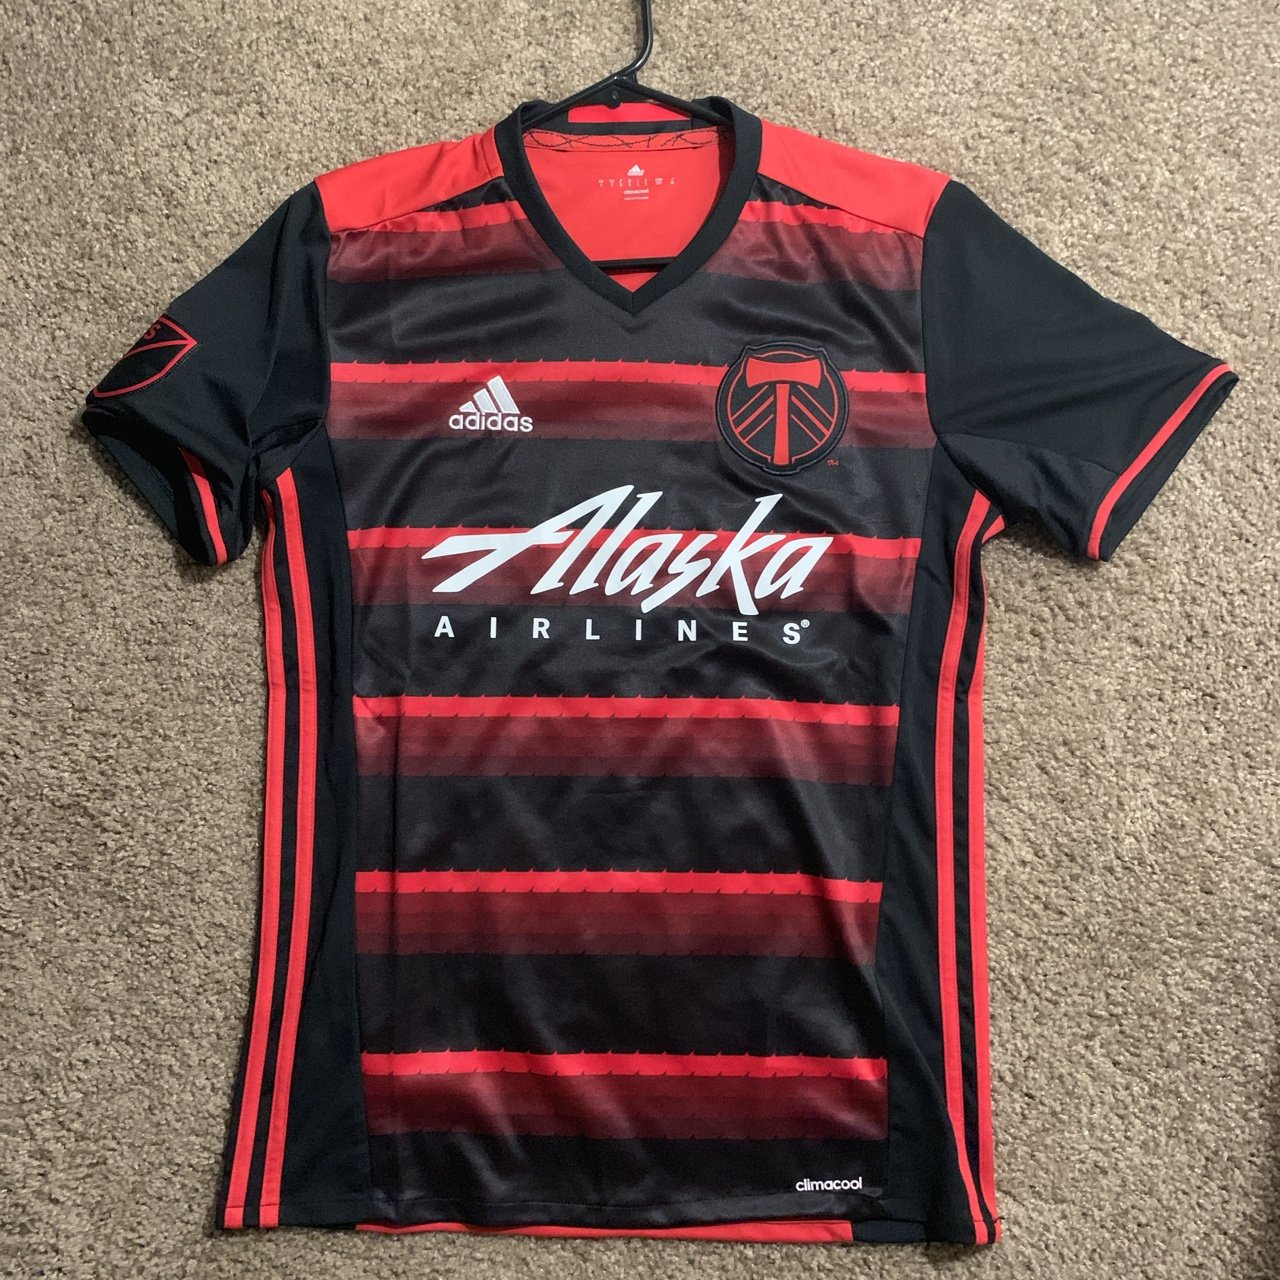 2d0c21260 @wokenstar. 2 days ago. Perris, United States. Adidas Soccer Jersey Red/ black colorway